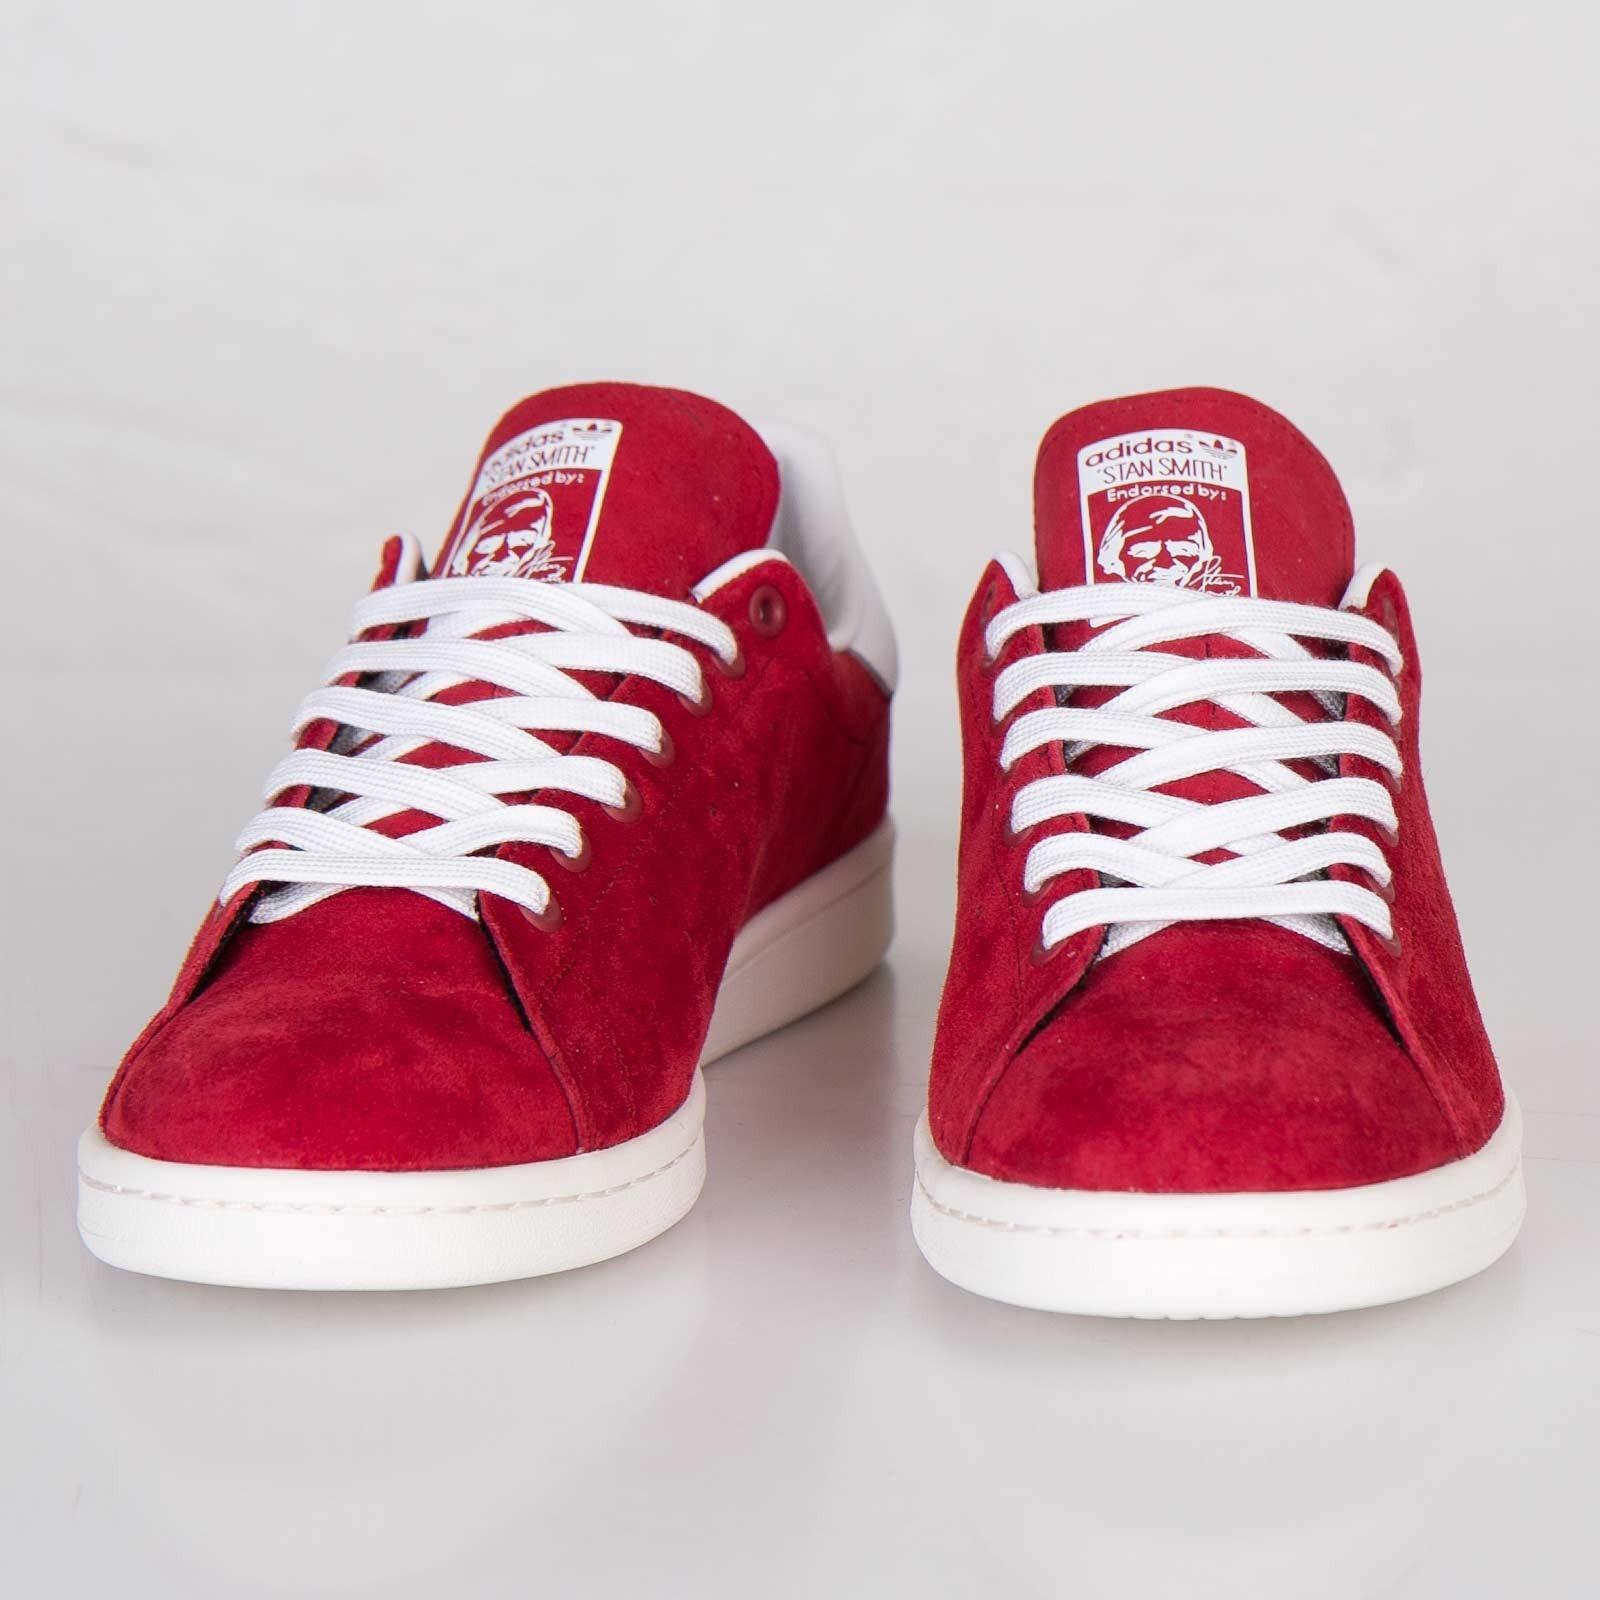 meilleur site web 79a41 74add adidas stan smith rouge daim femme